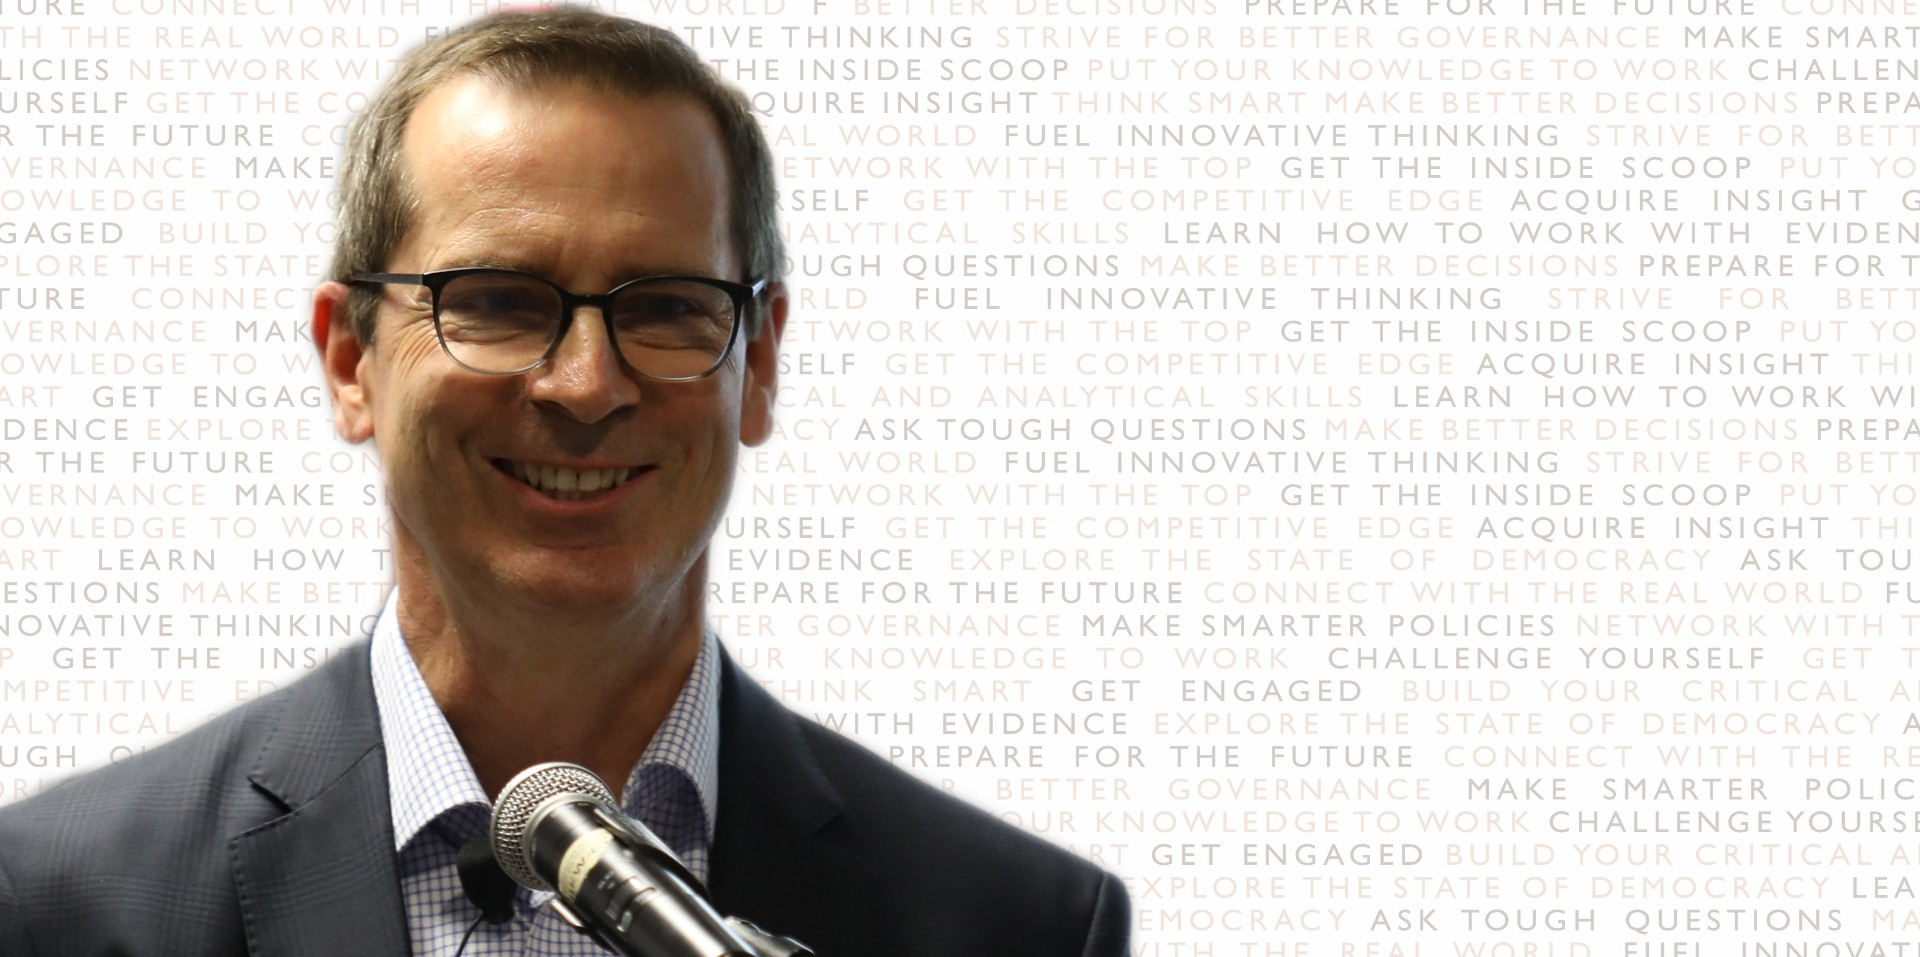 Climate Change: Can We Win This?  Be Honest.An Evening with...Honourable Dalton McGuinty, Former Premier of Ontario